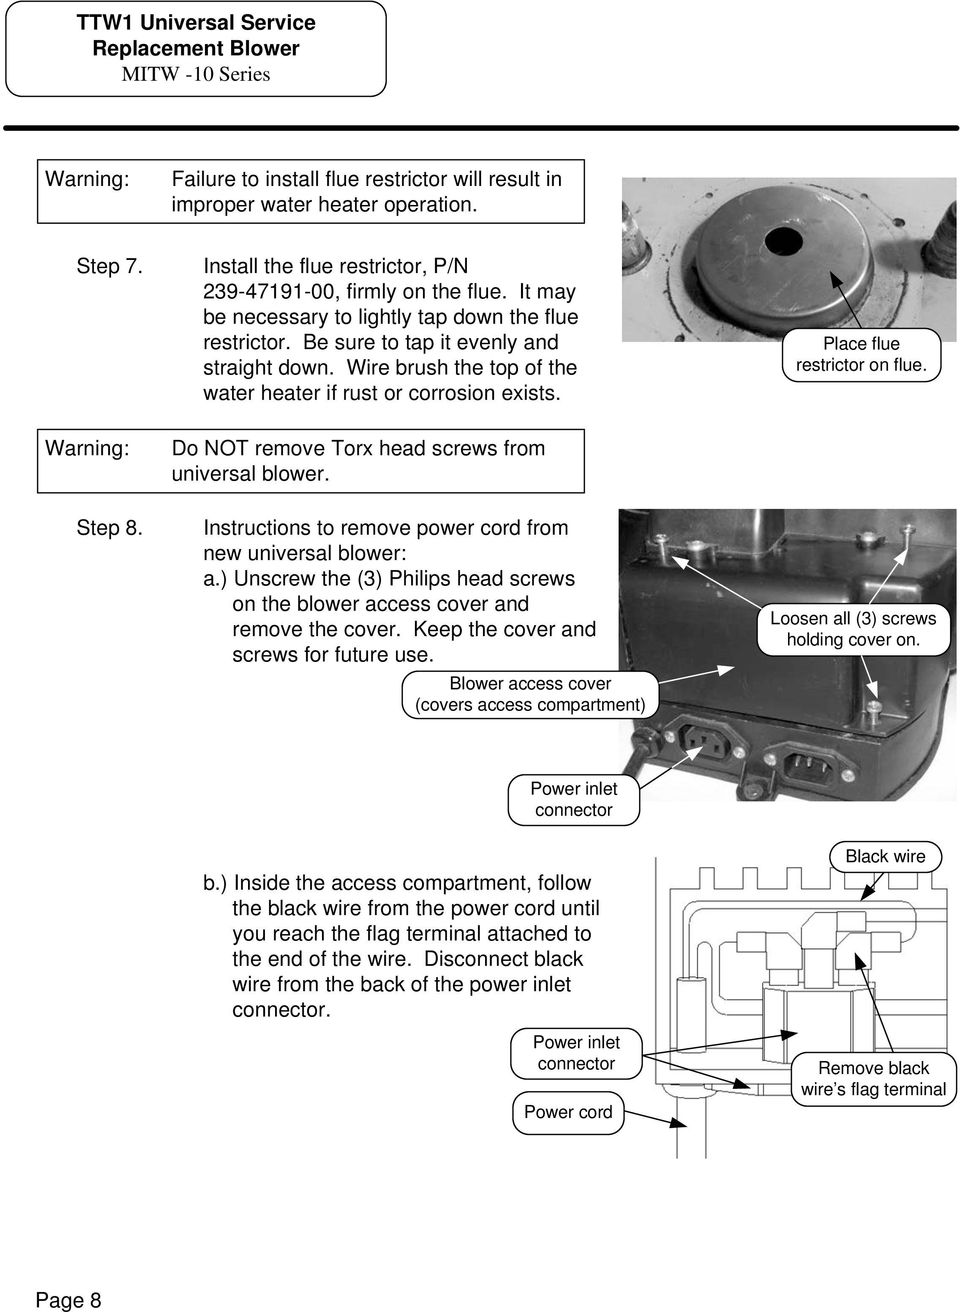 Instructions For Ttw 1 Universal Service Replacement Blower Kit P N Diagram Of Honda Motorcycle Parts 2012 Gl1800 8a Cylinder Head Cover Do Not Remove Torx Screws From To Power Cord